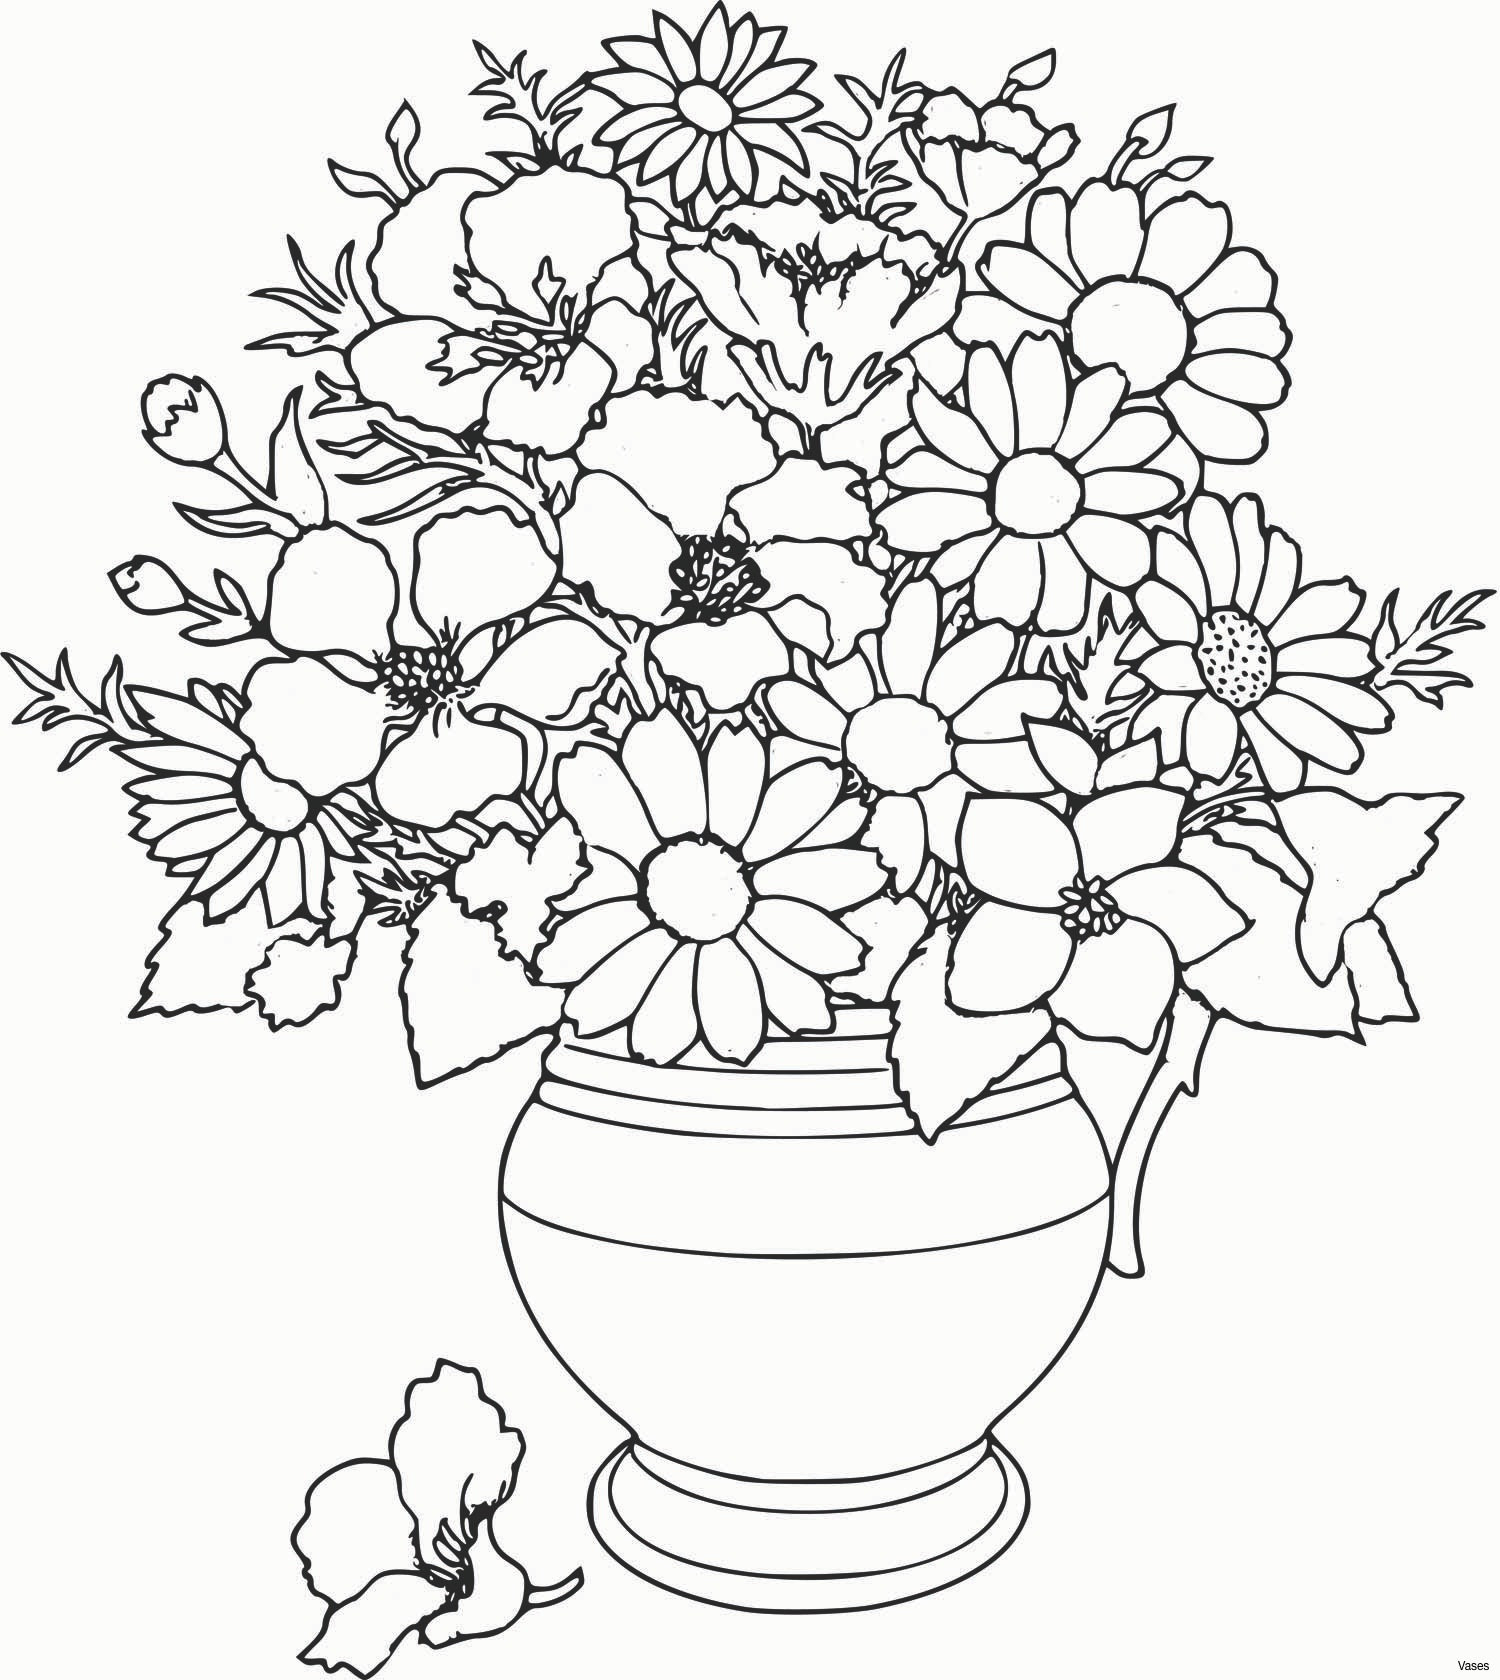 Rose Coloring Pages  to Print 12p - Free Download